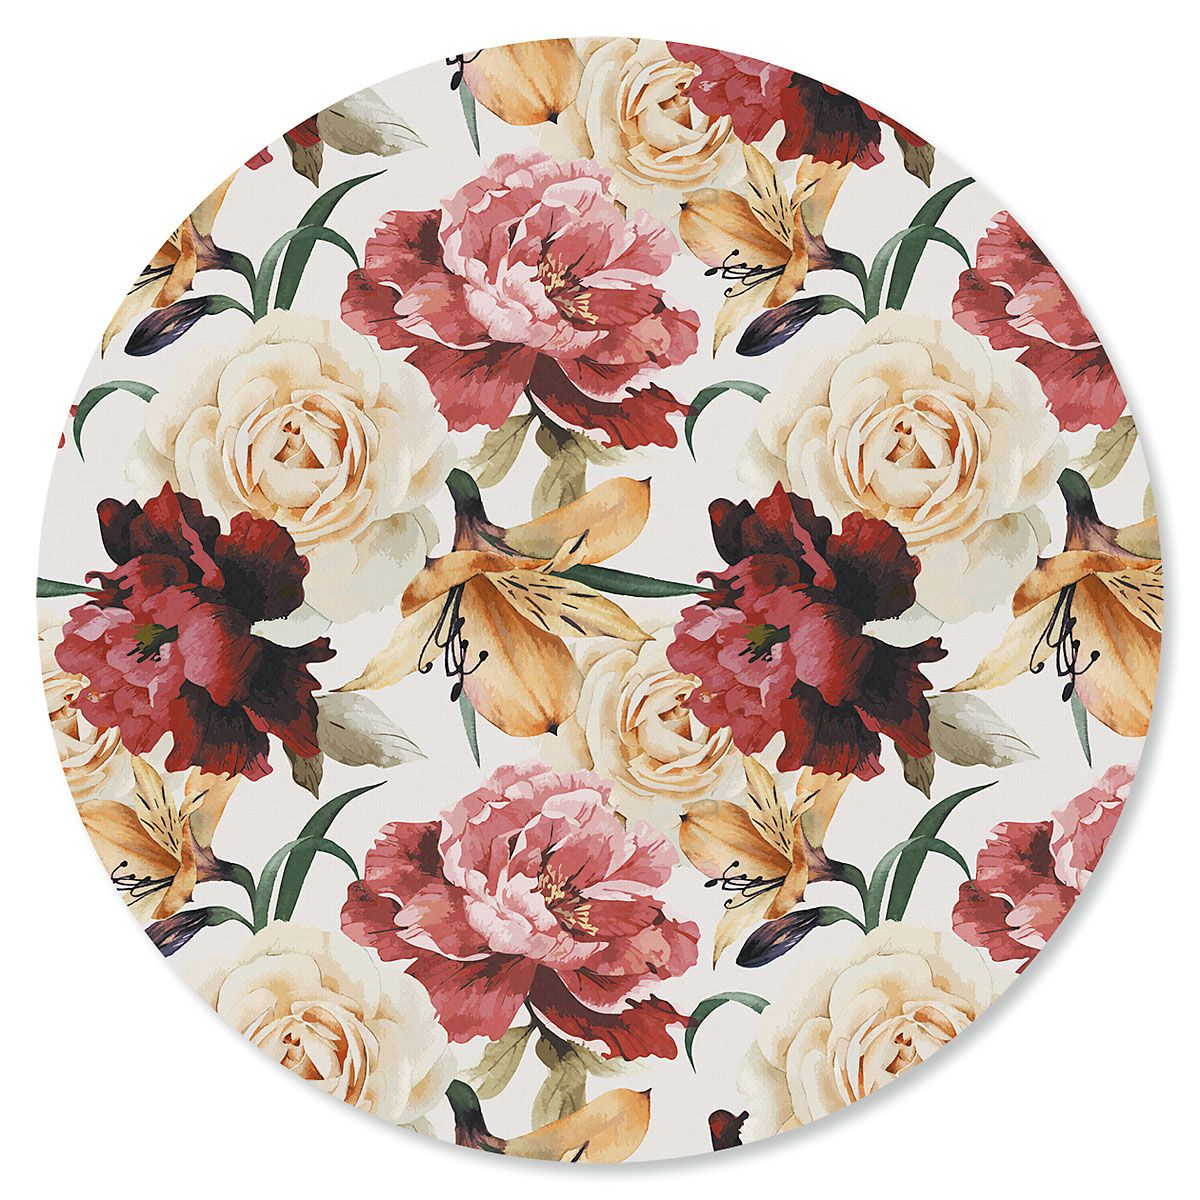 Watercolor Bouquet Round Mouse Pad